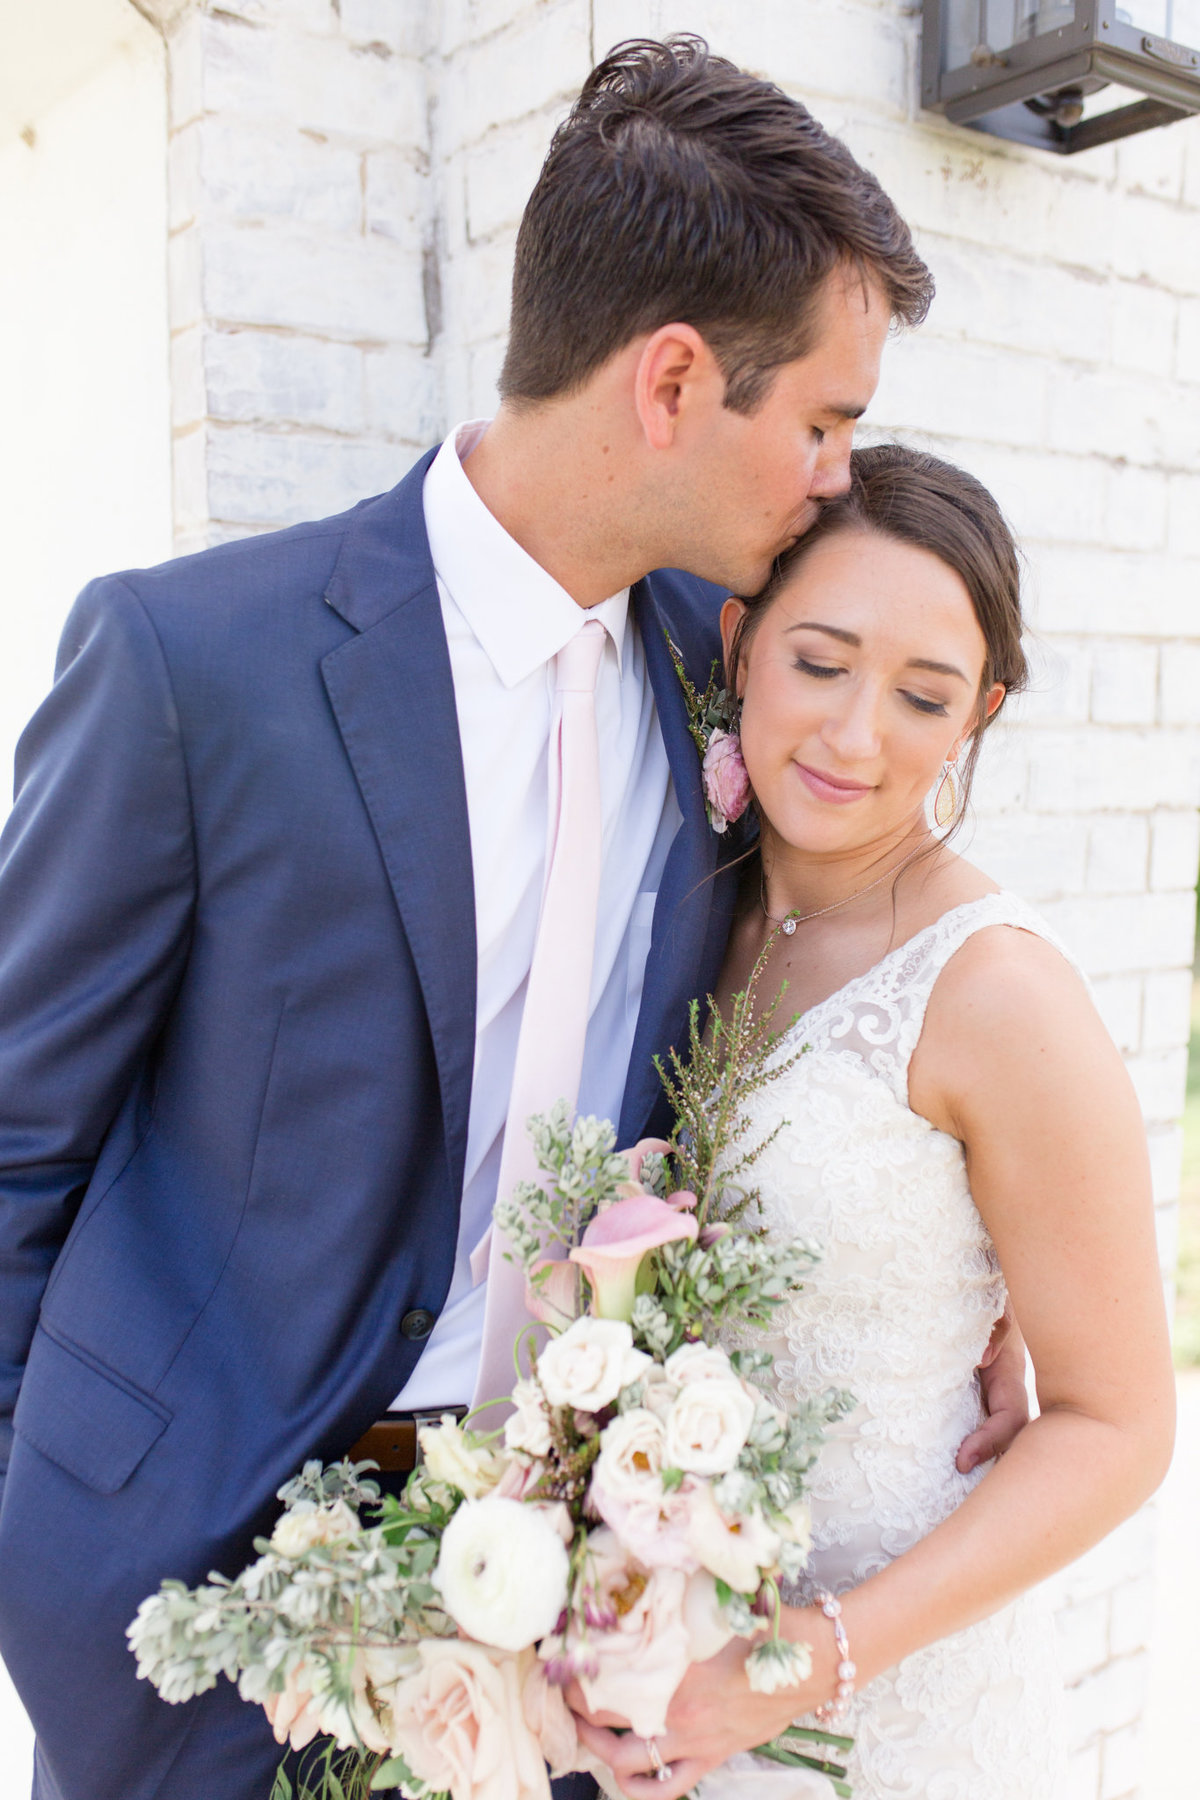 Grand Ivory Wedding| Dallas, Texas | DFW Wedding Photographer | Sami Kathryn Photography-100